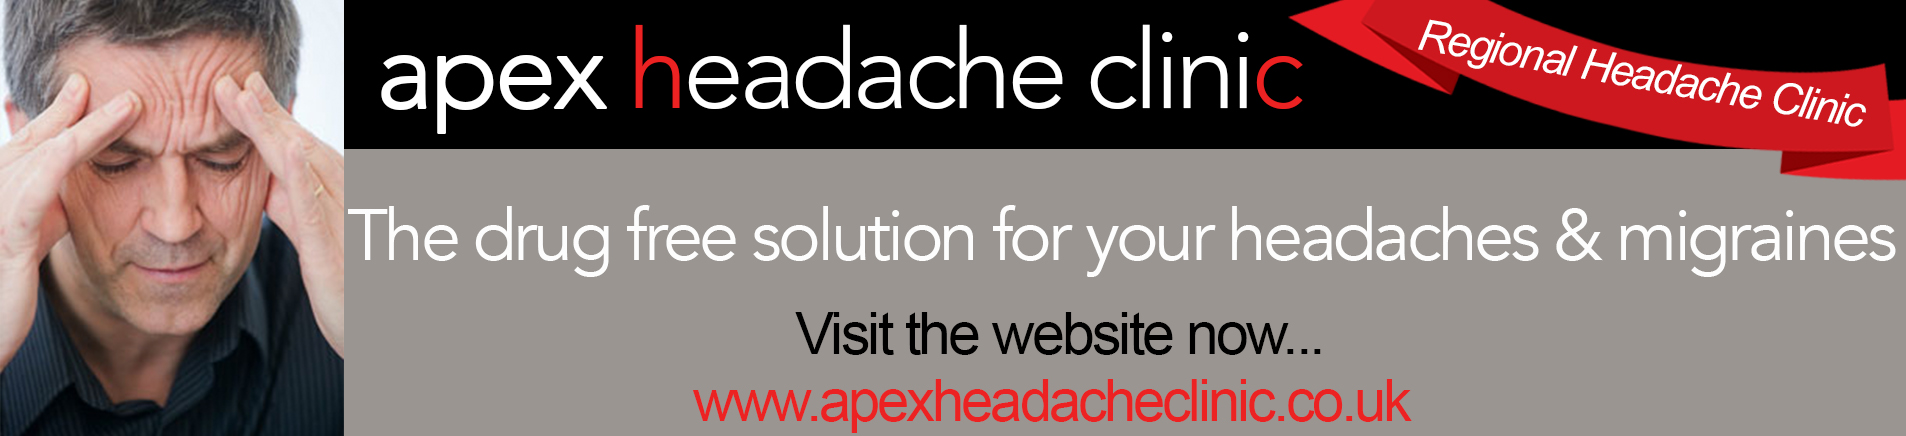 headache-clinic-banner-new